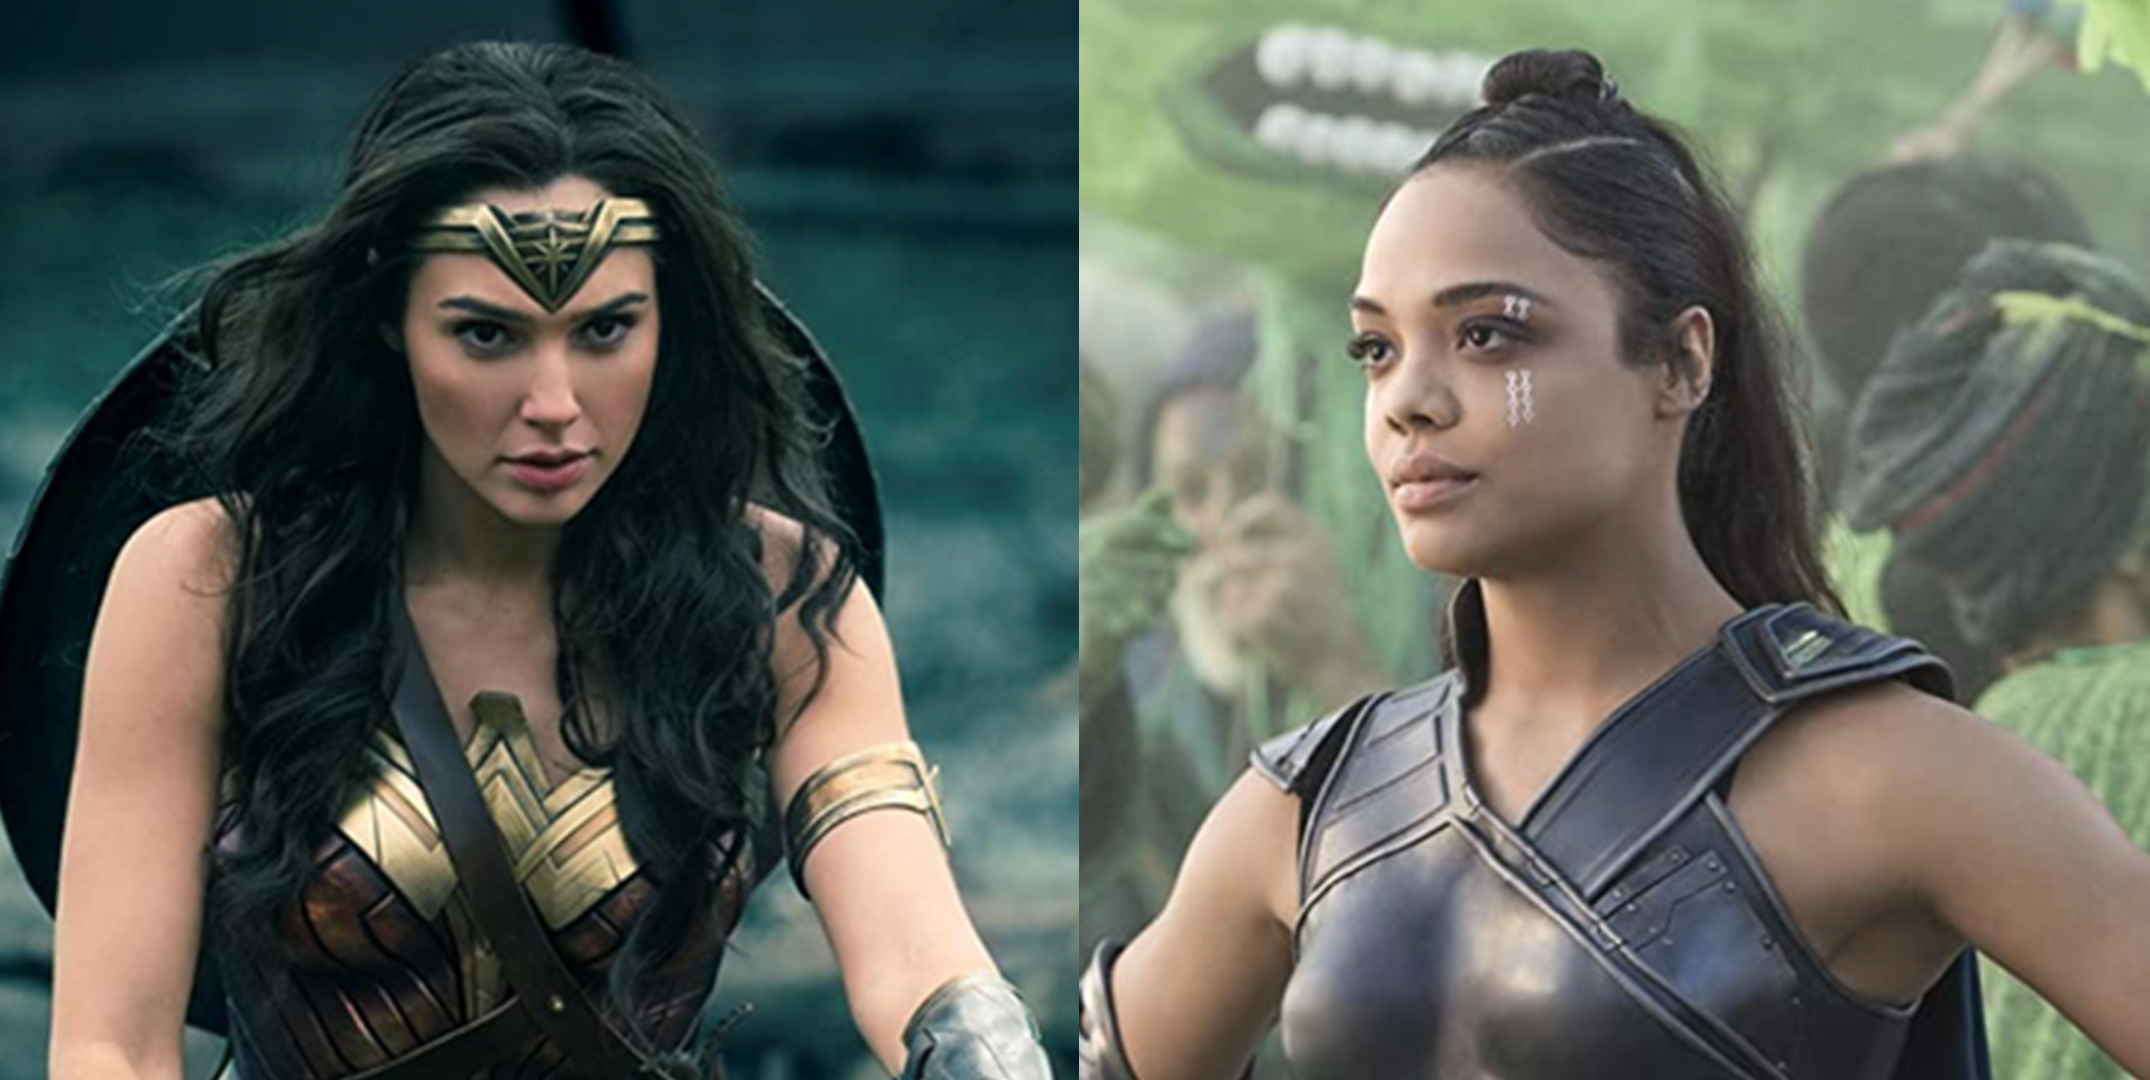 The 12 Best Female Superheroes That'll Motivate You to Power Through This Year